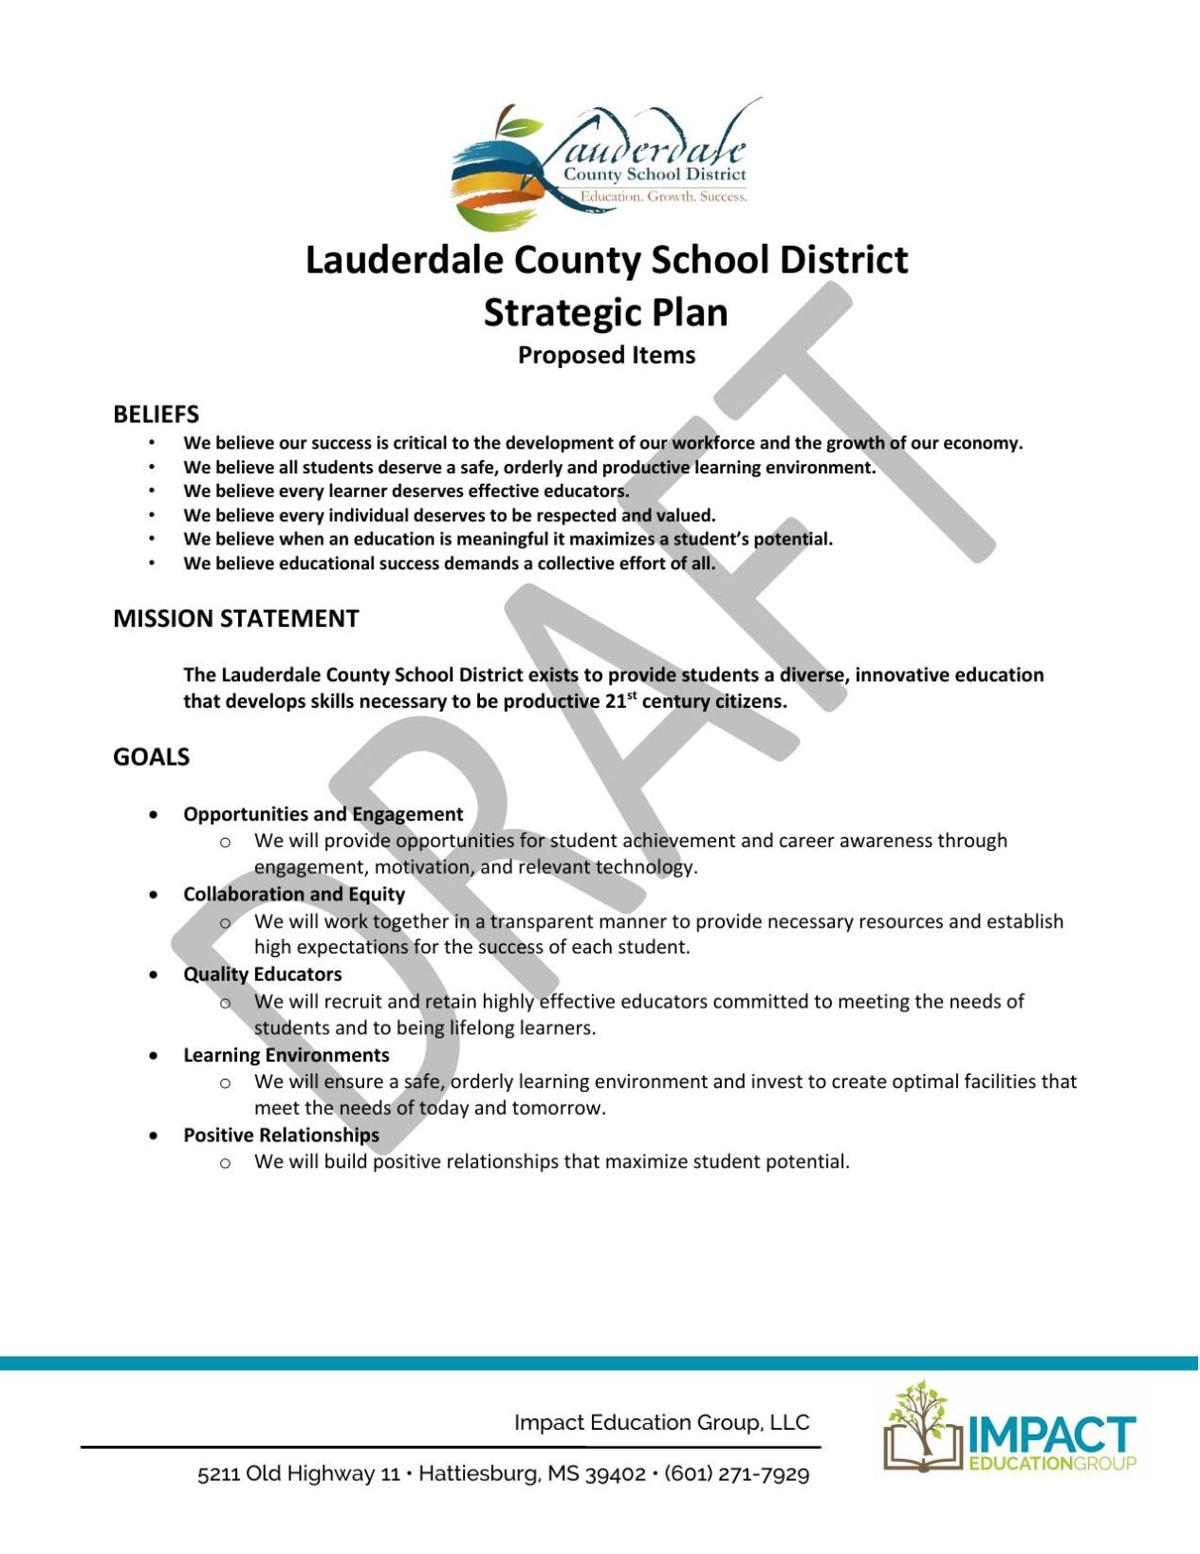 Lauderdale County School District Strategic Plan